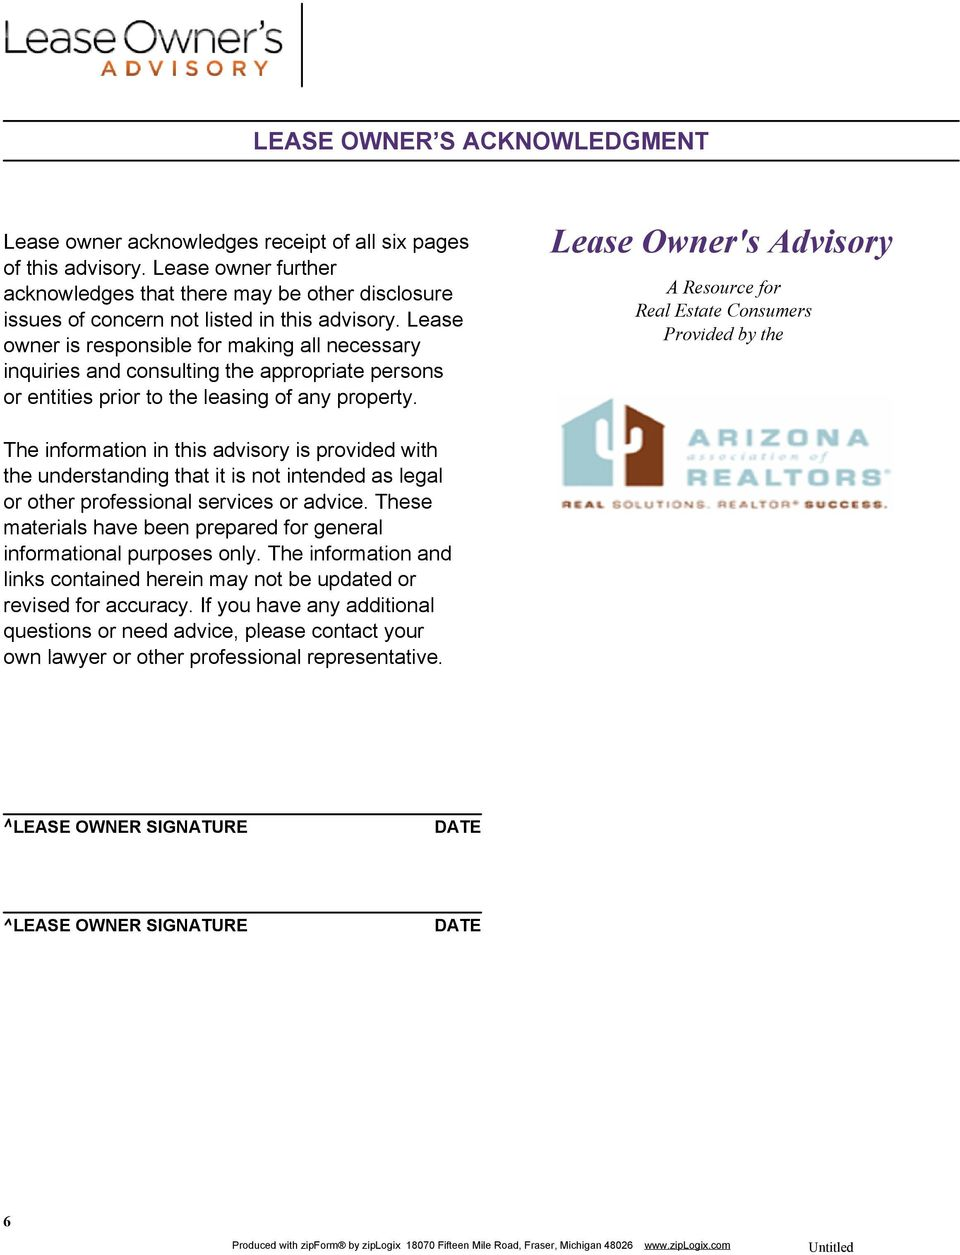 Lease owner is responsible for making all necessary inquiries and consulting the appropriate persons or entities prior to the leasing of any property.